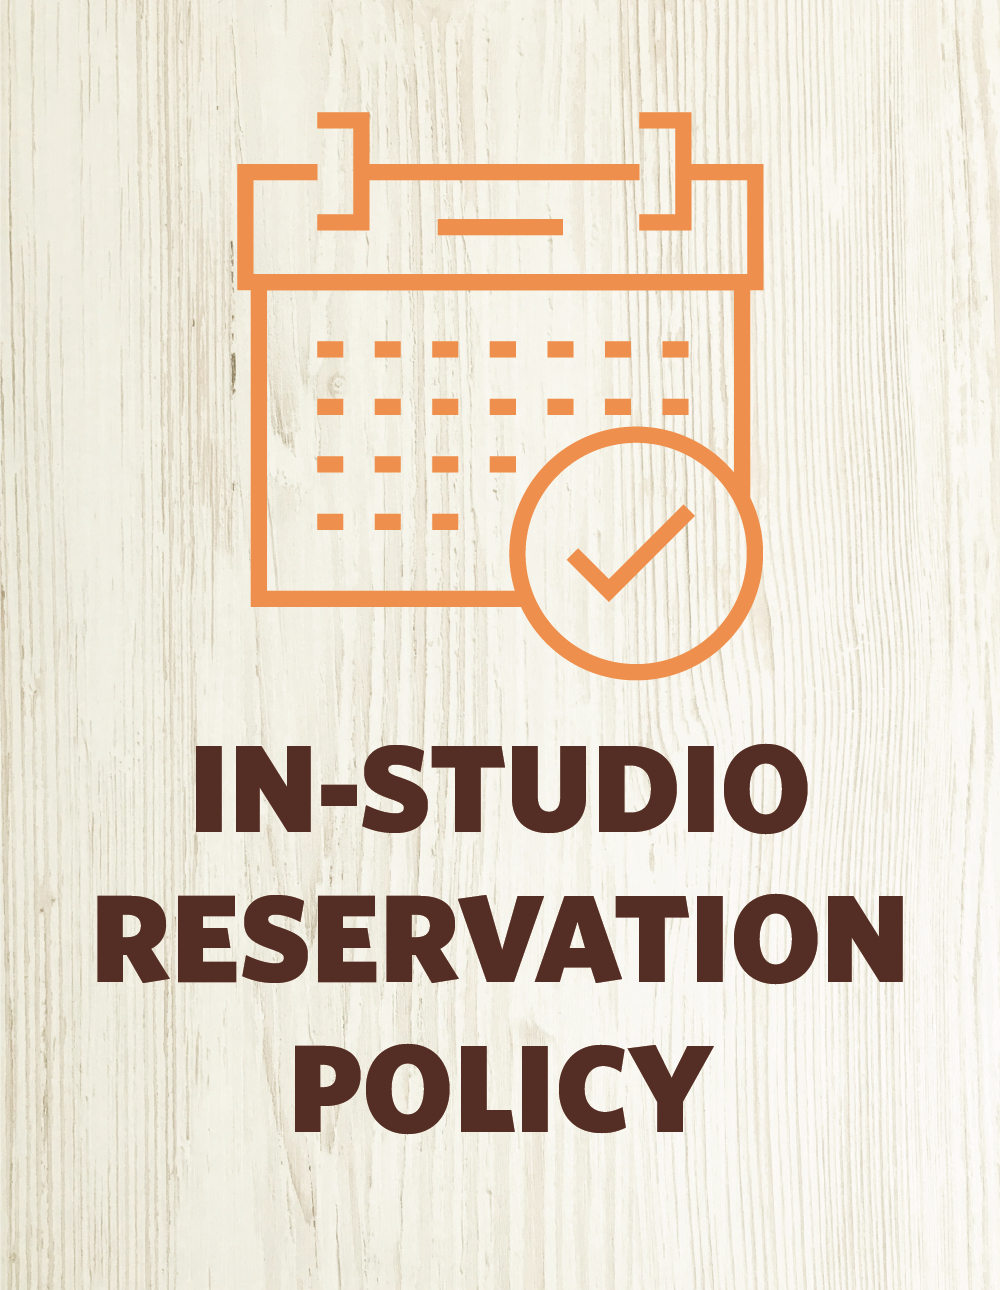 In-Studio Class Reservation Policy